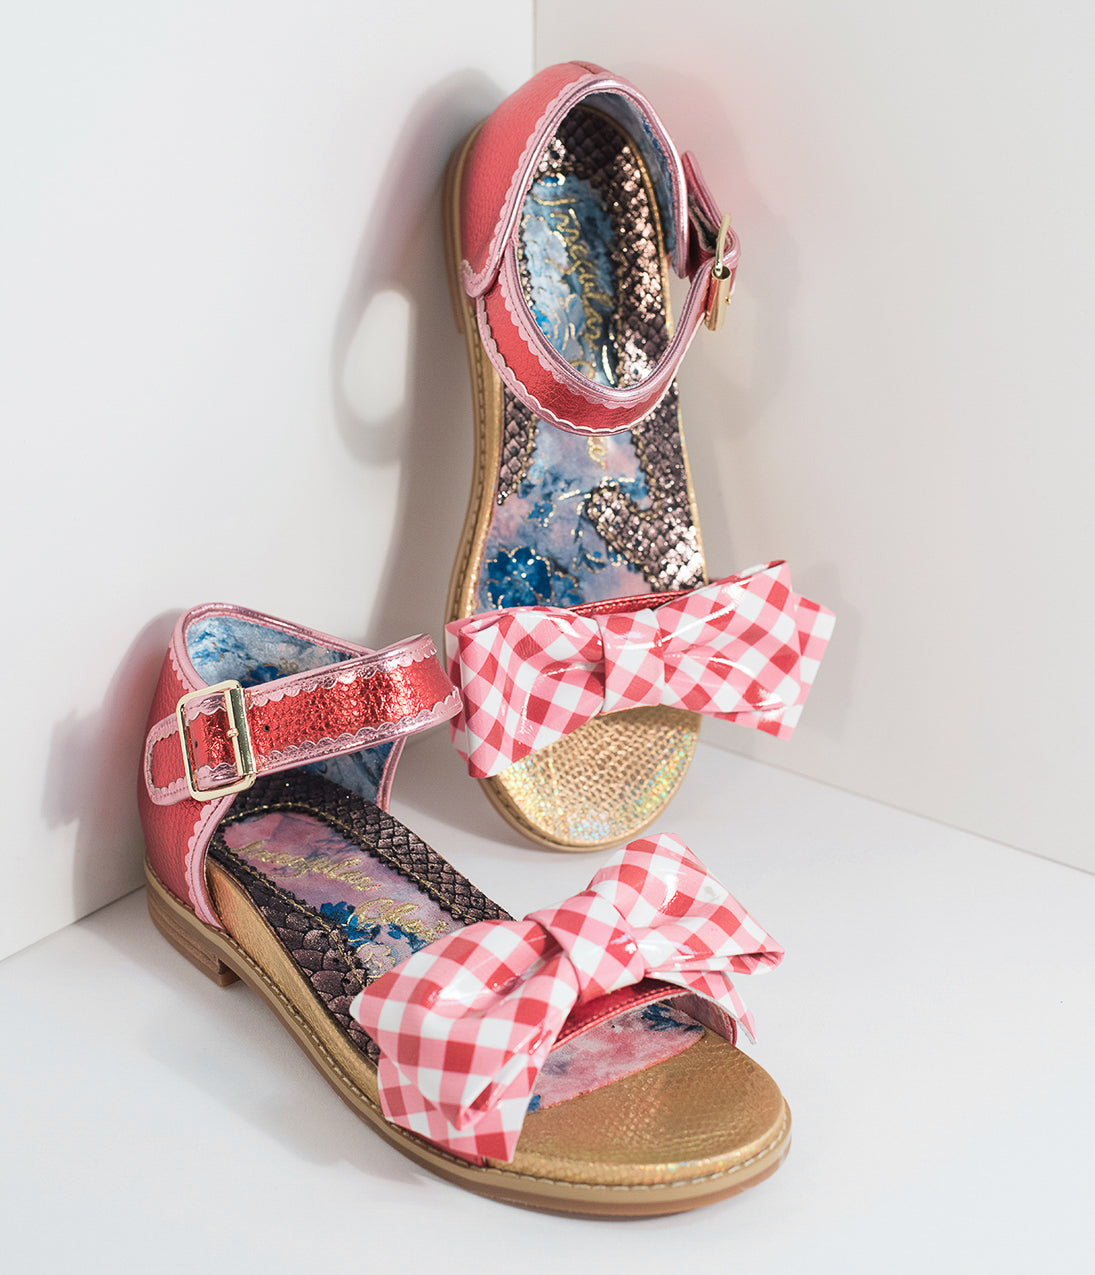 1950s Style Shoes Irregular Choice Red Gingham Picnic Day Sandals $150.00 AT vintagedancer.com